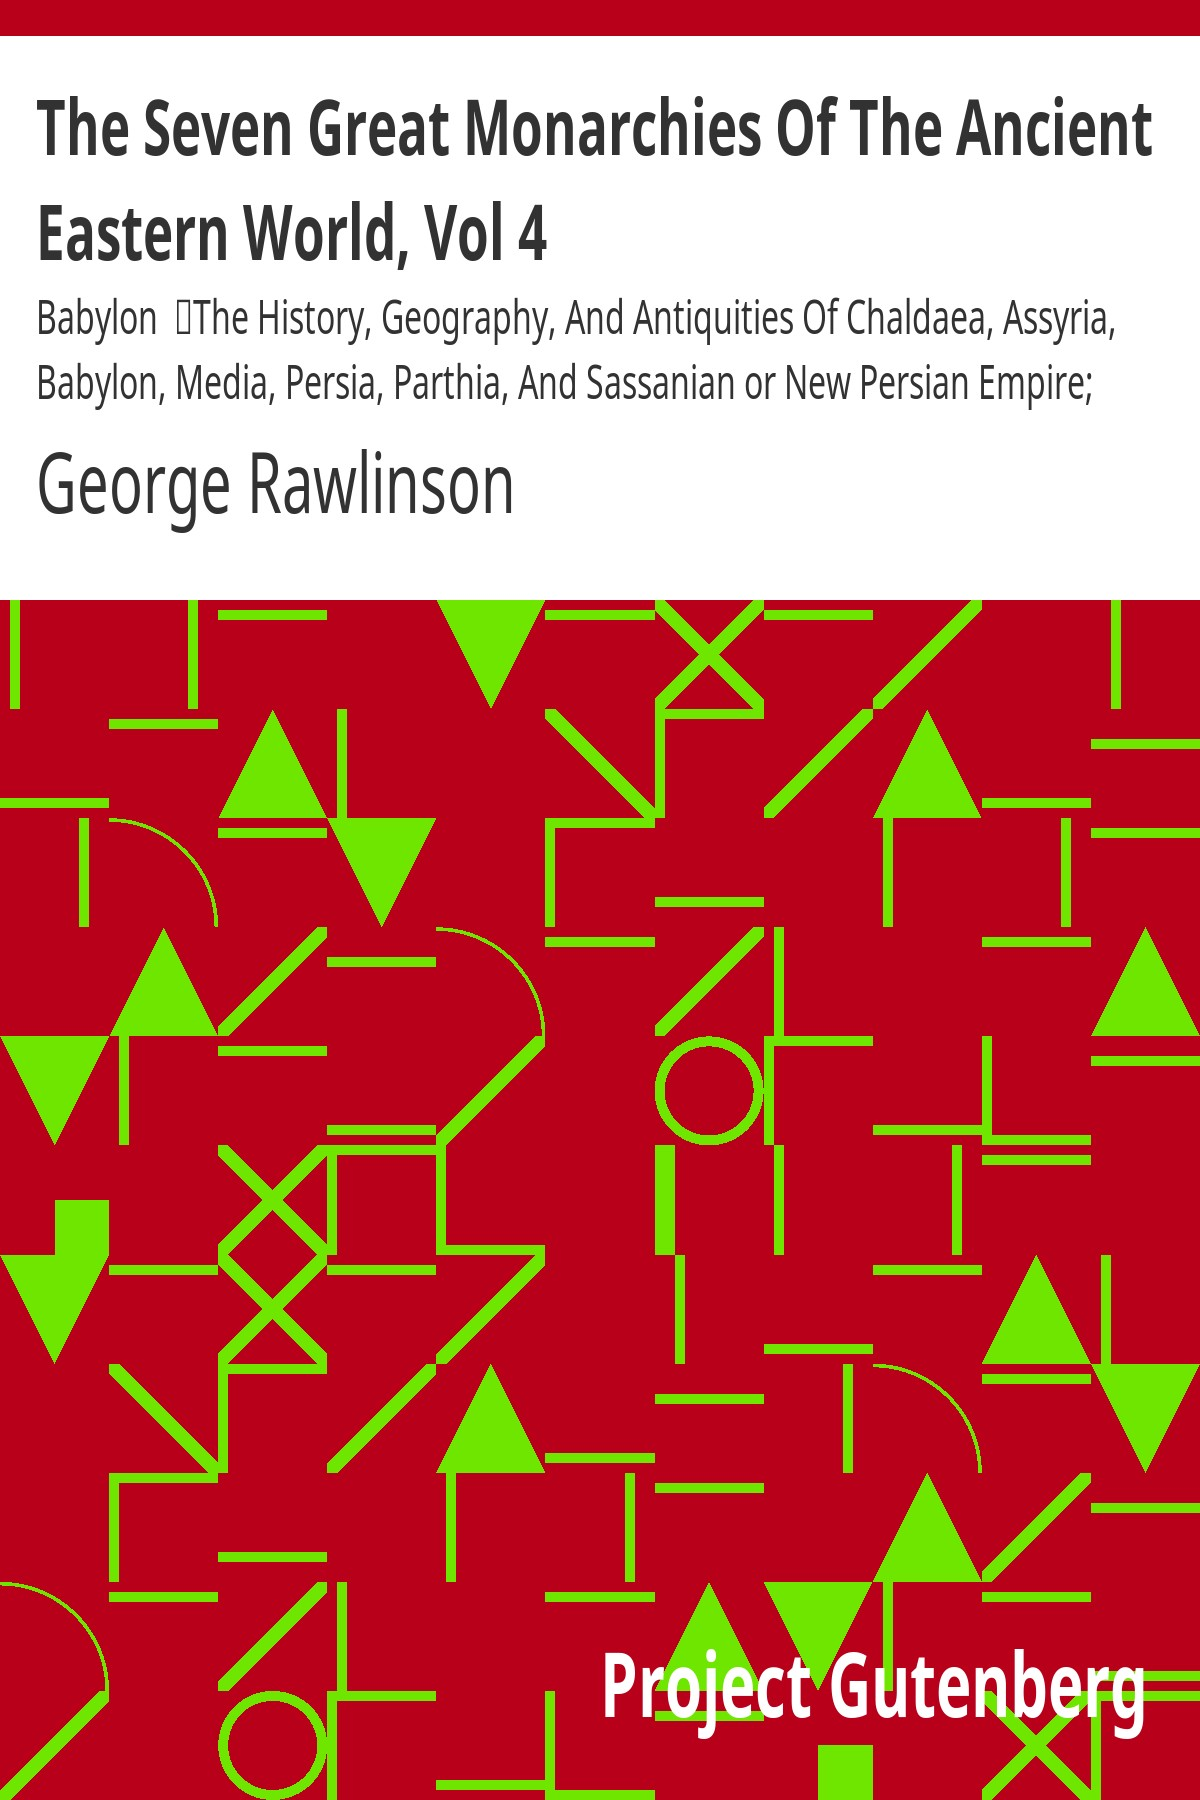 George Rawlinson The Seven Great Monarchies Of The Ancient Eastern World, Vol 4: Babylon The History, Geography, And Antiquities Of Chaldaea, Assyria, Babylon, Media, Persia, Parthia, And Sassanian